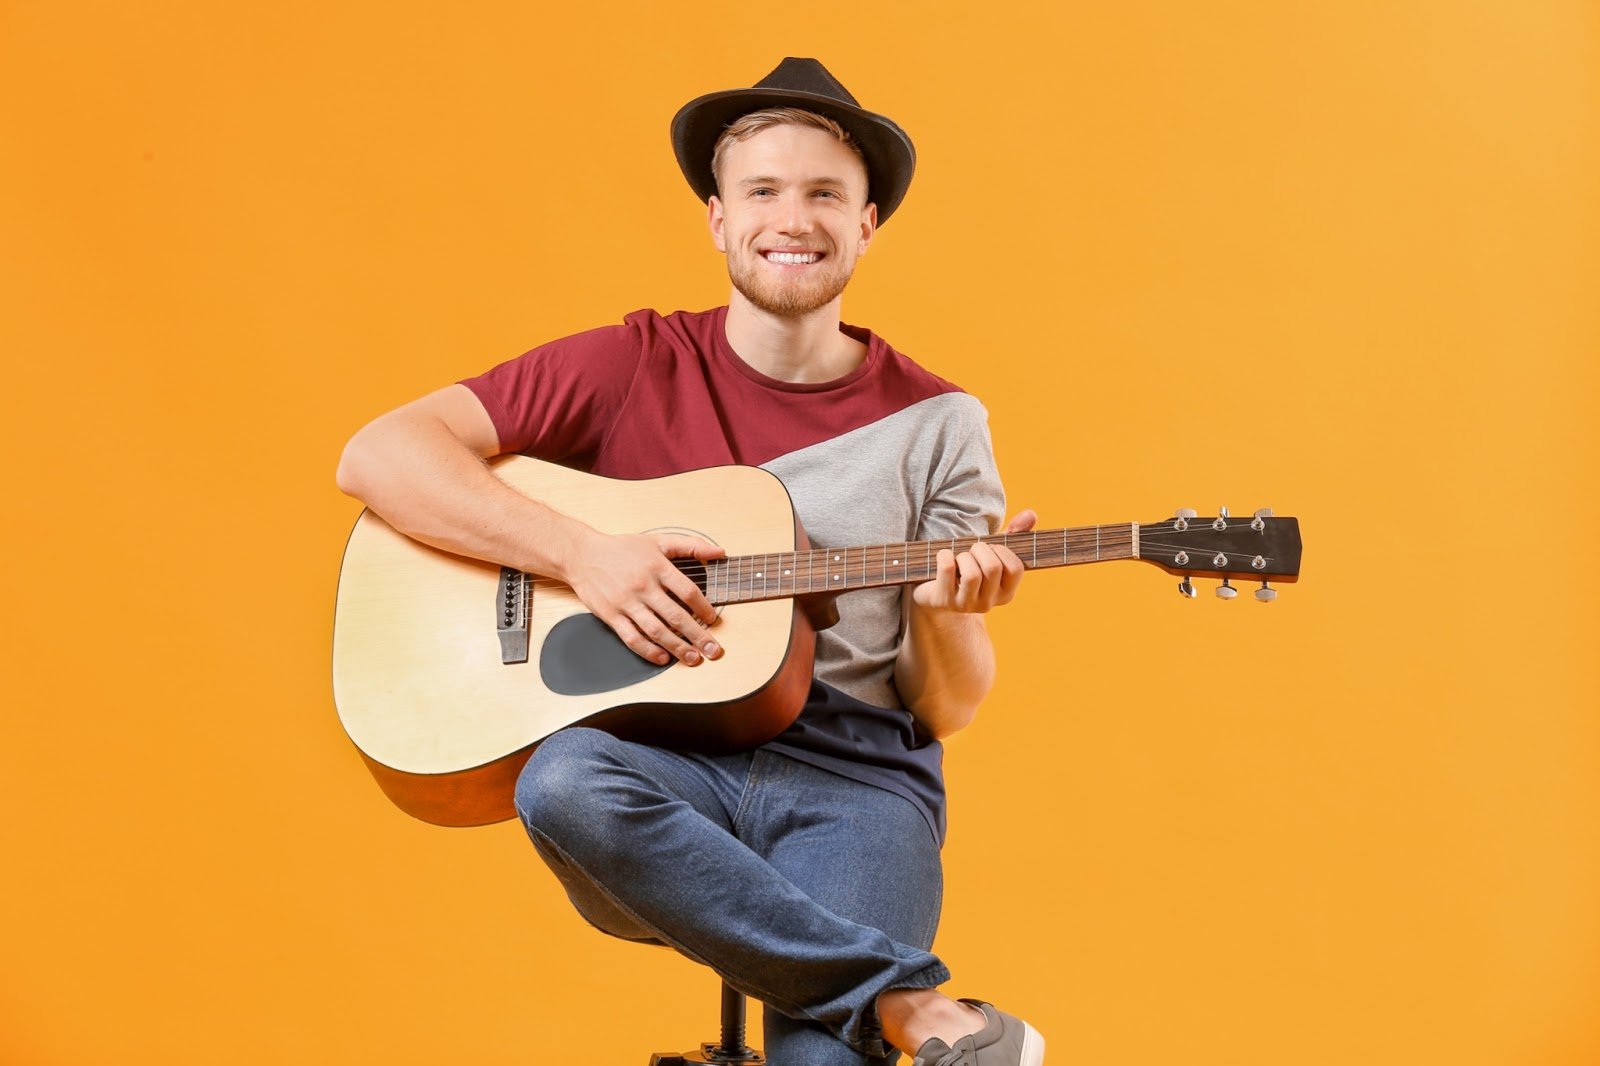 A man plays guitar as part of a virtual happy hour activity